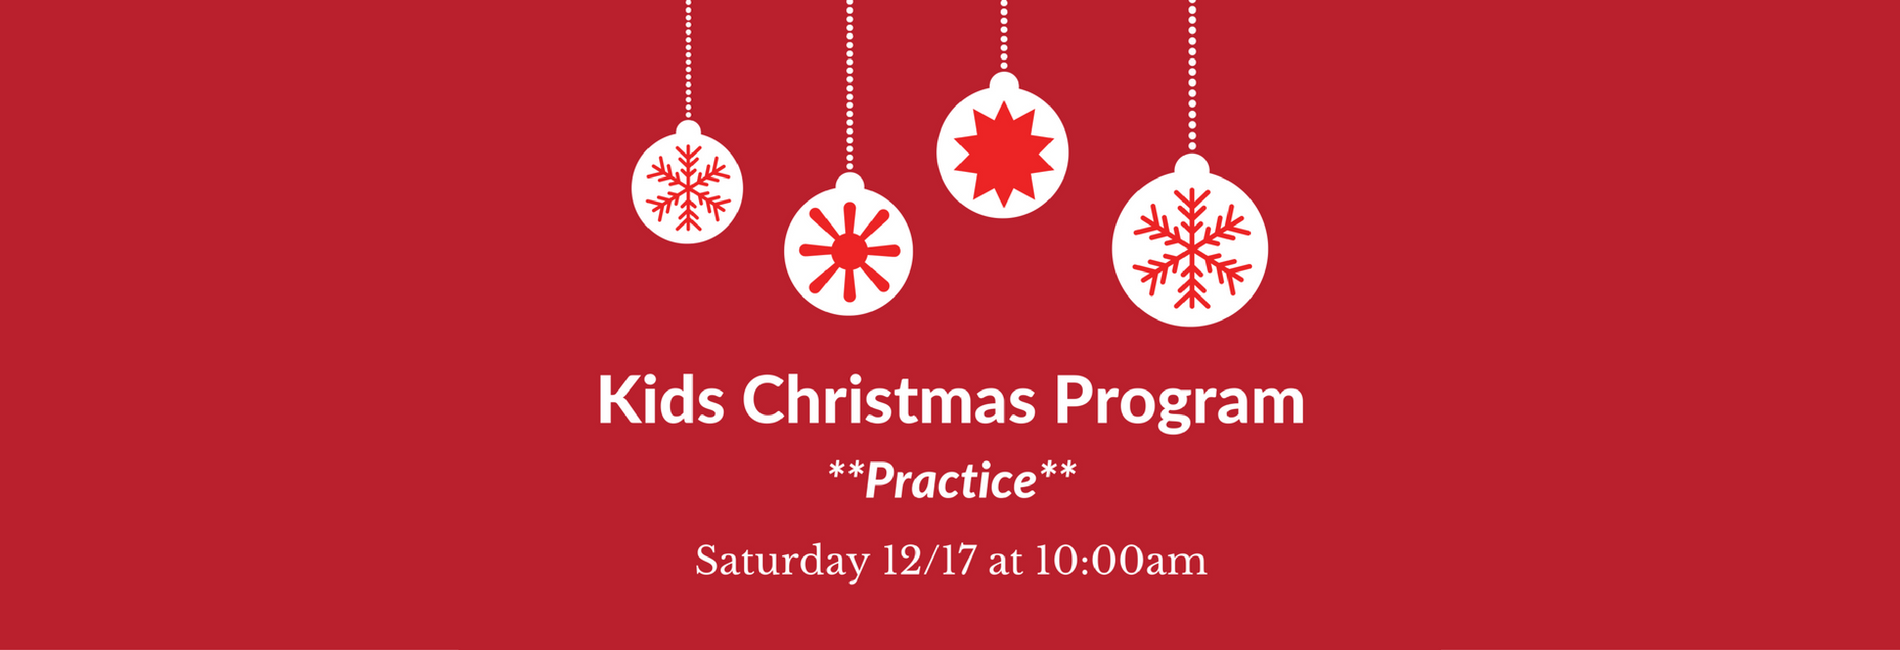 Practice for Kids Christmas Program — LHCnj.net